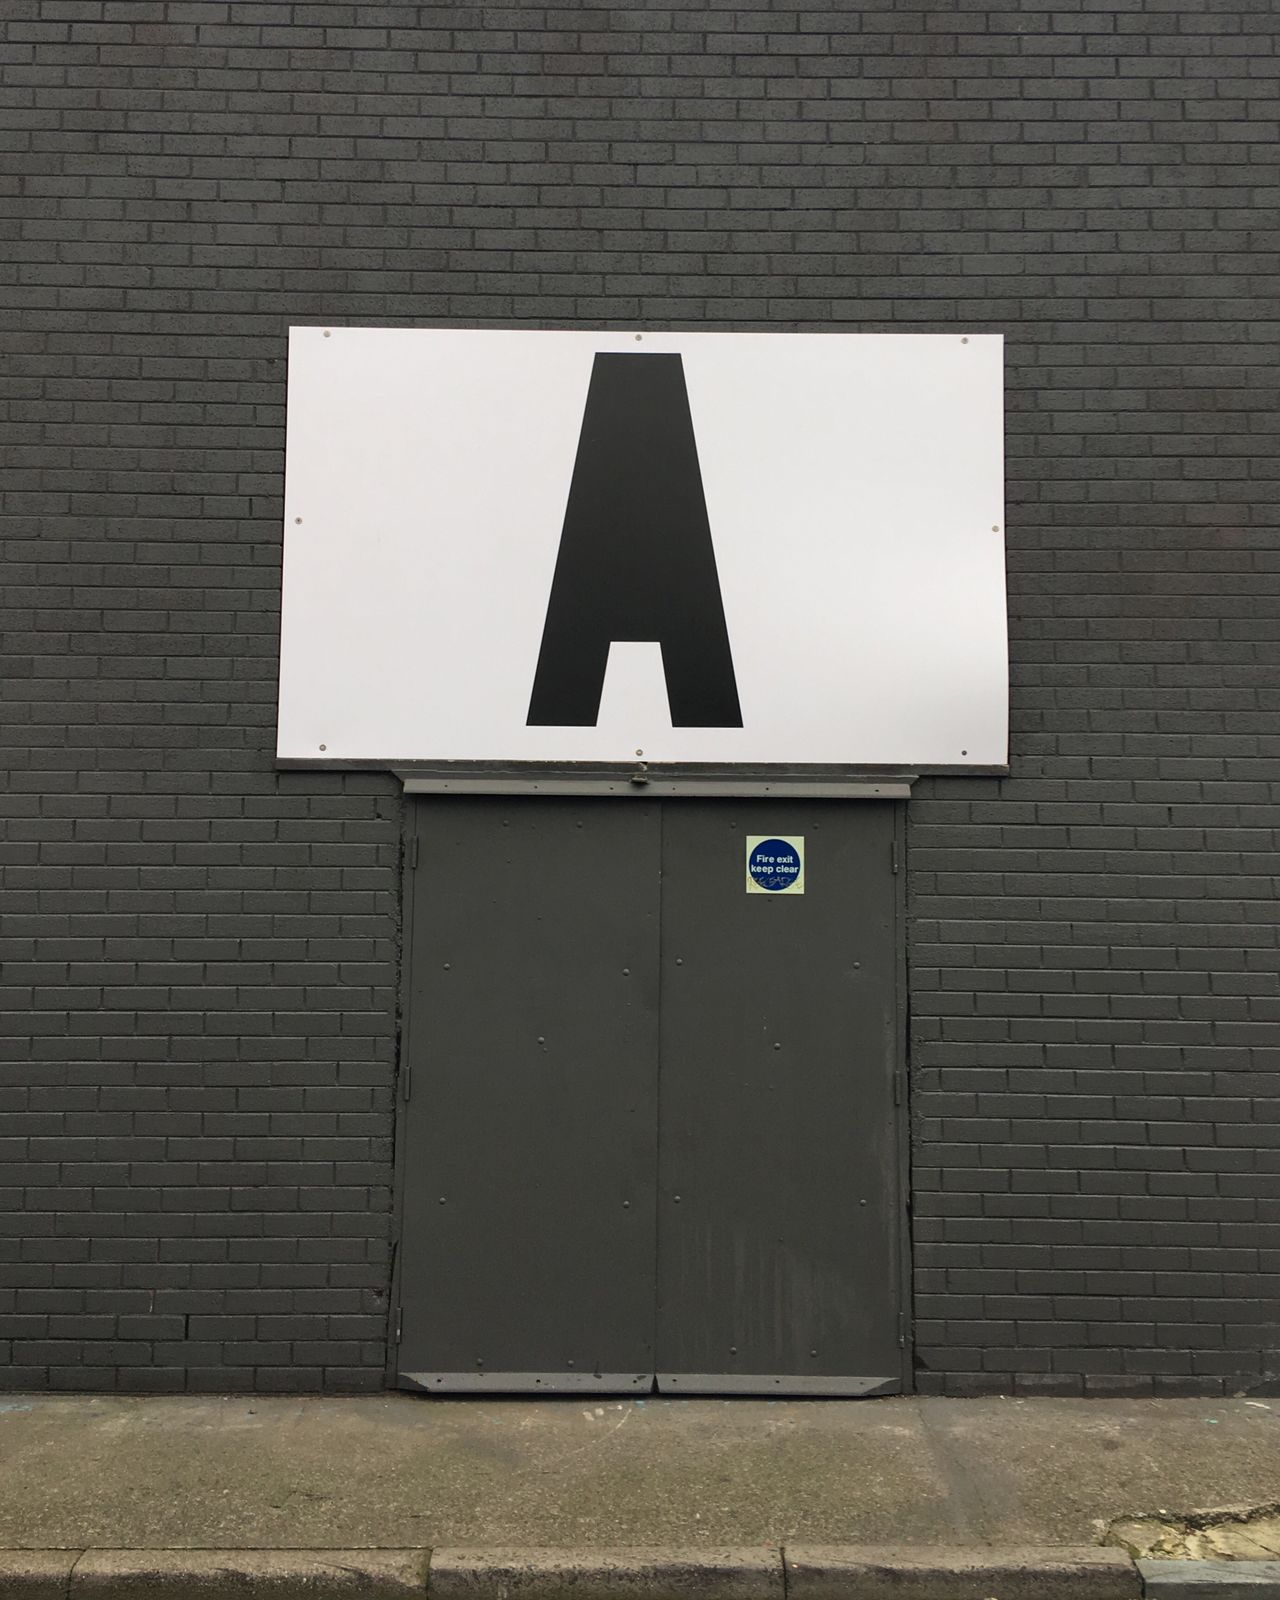 The A game Alphabet City Itsliverpool